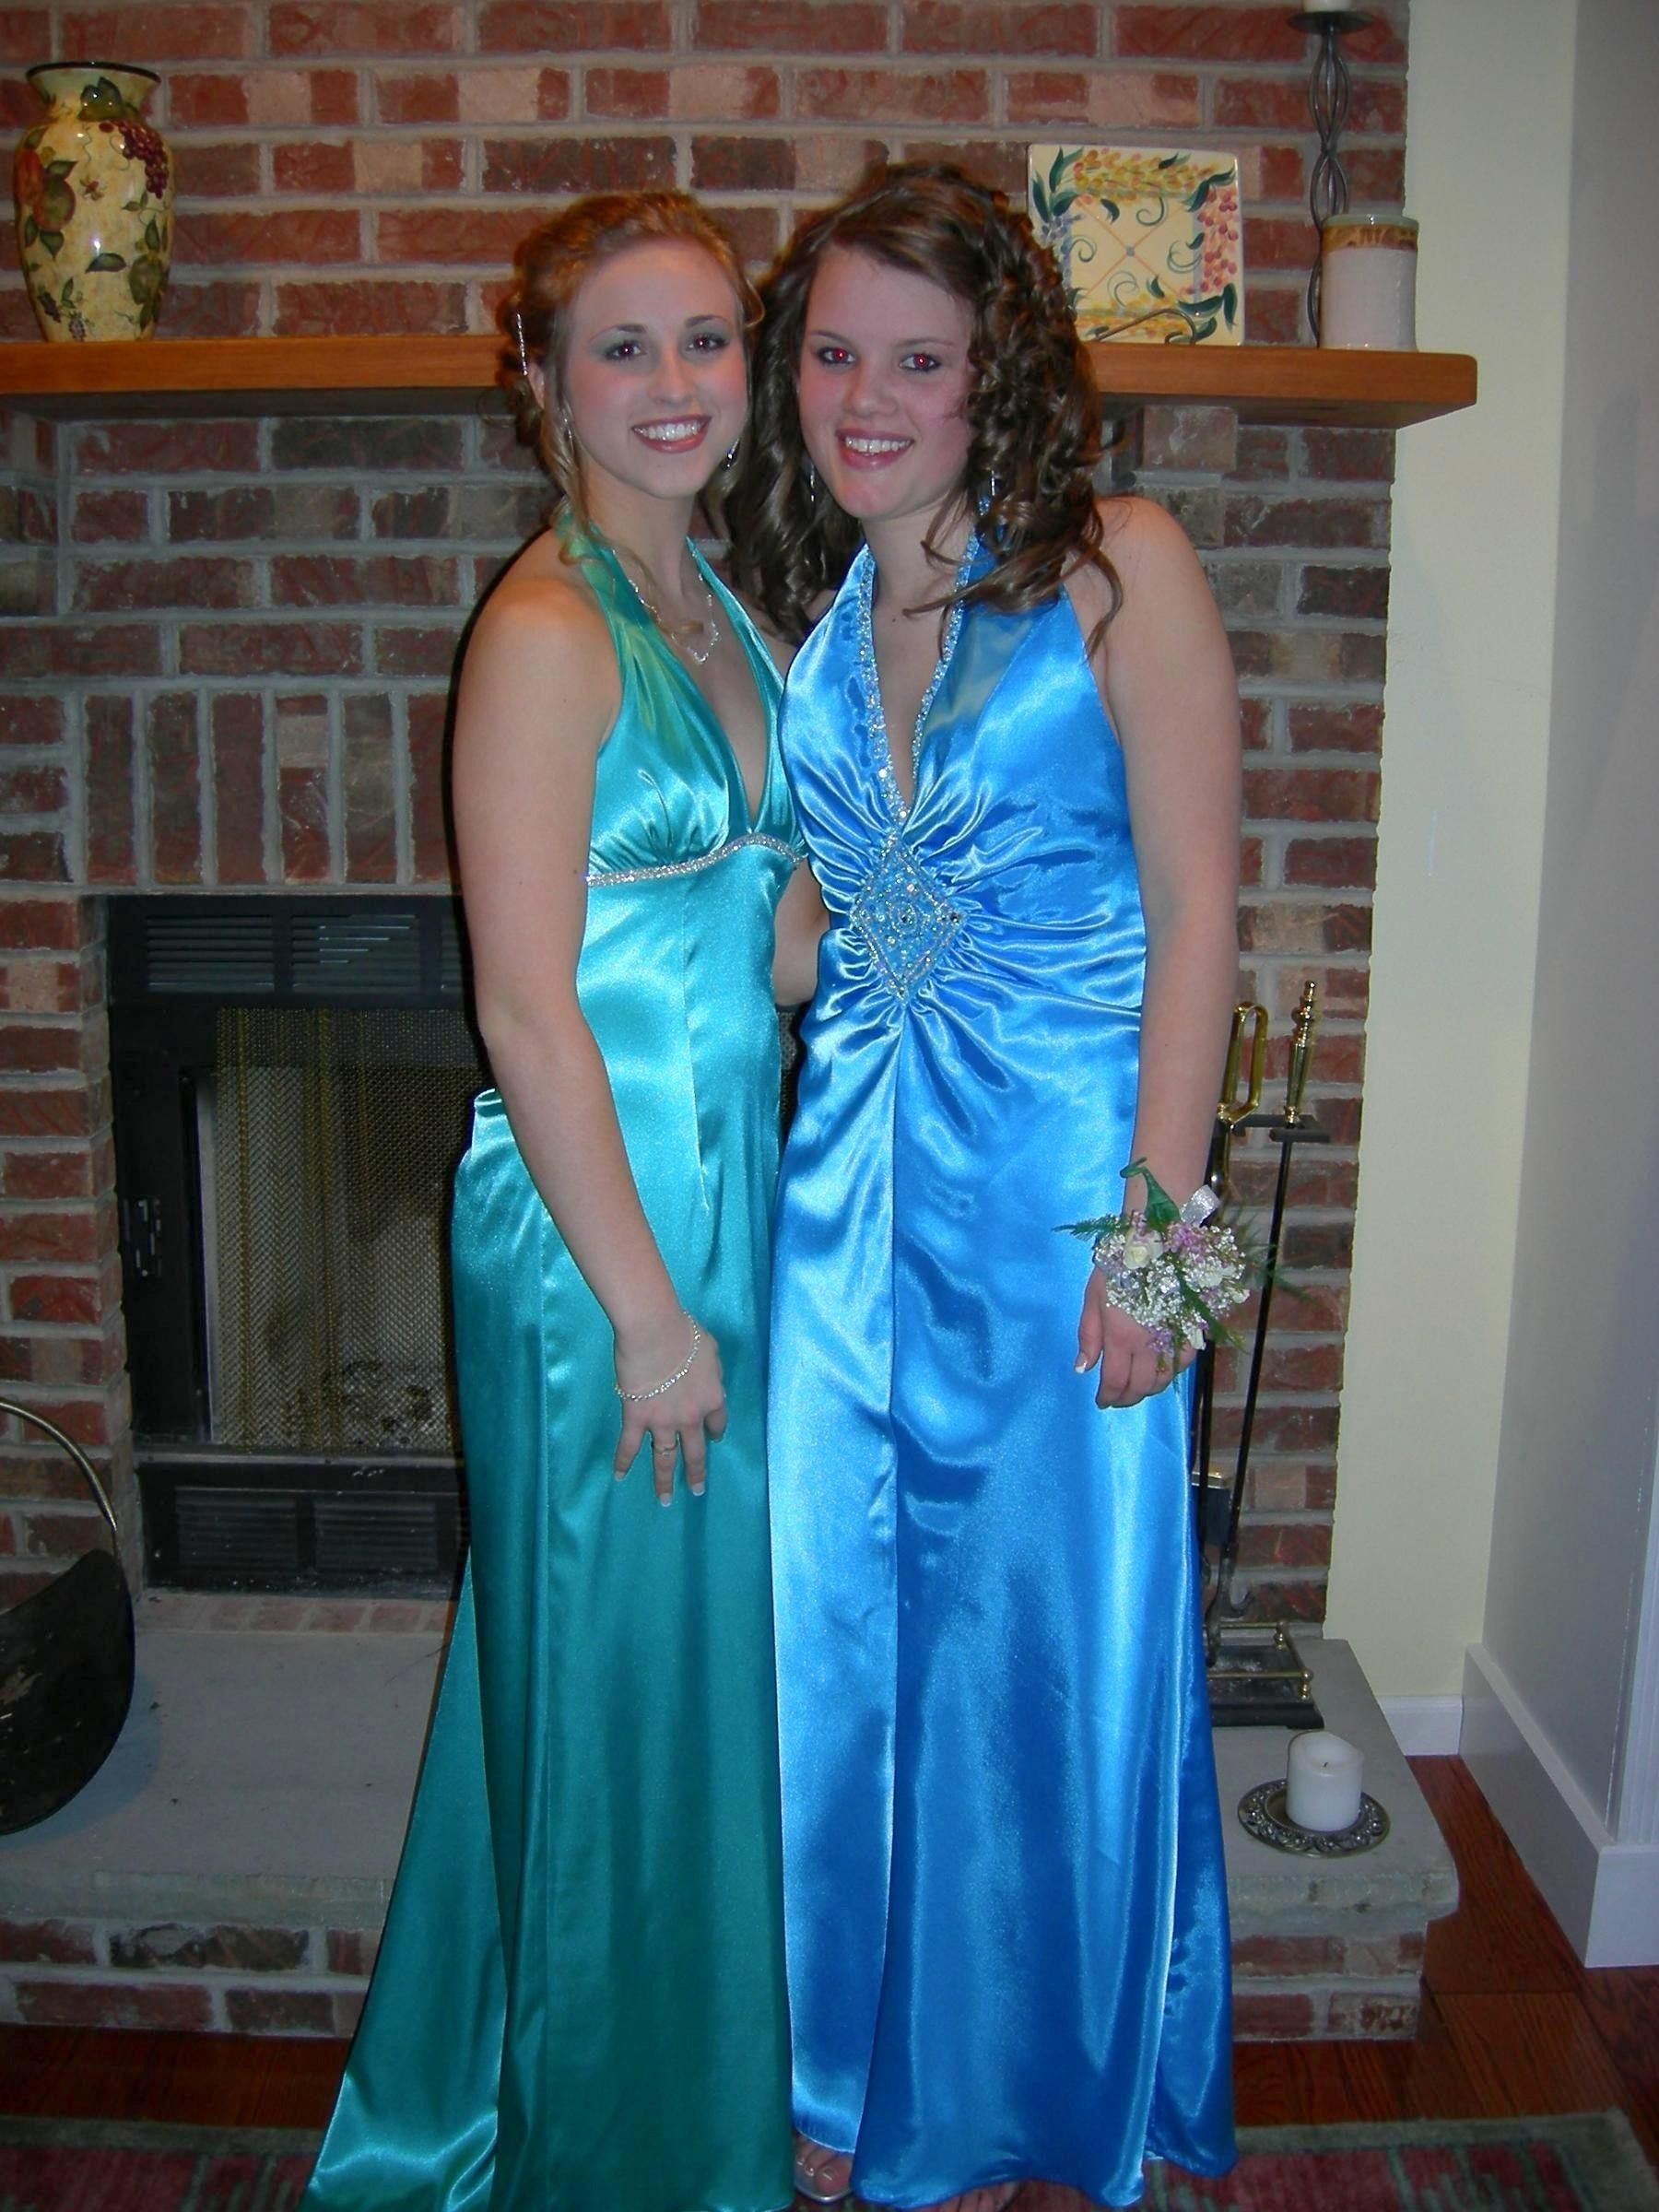 How I wish this was me going to prom   Crossdressing   Pinterest ...